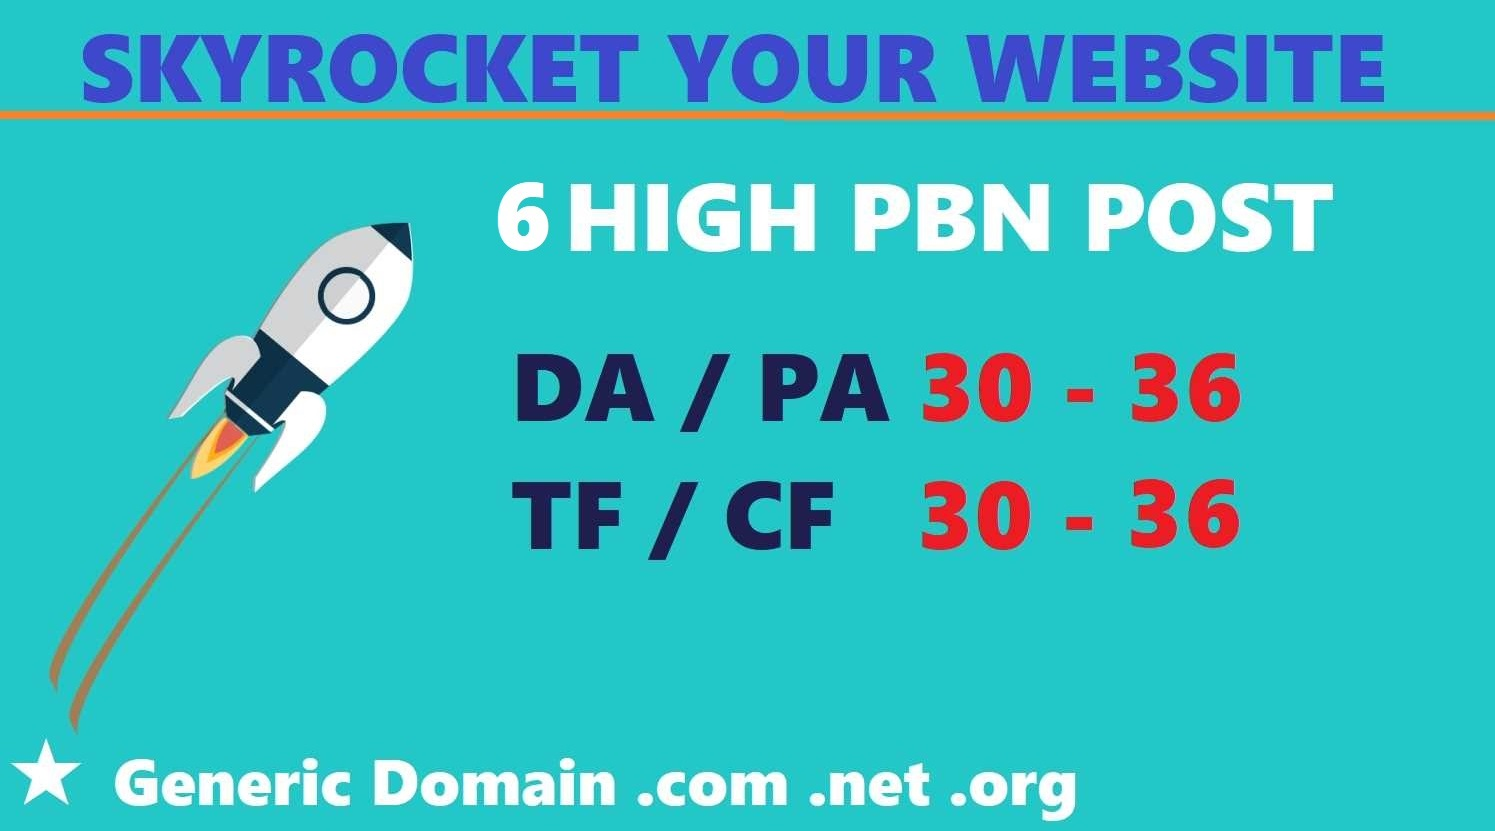 6 High PBN Post DA PA TF CF 25 - 35+ Dofollow Homepage Links